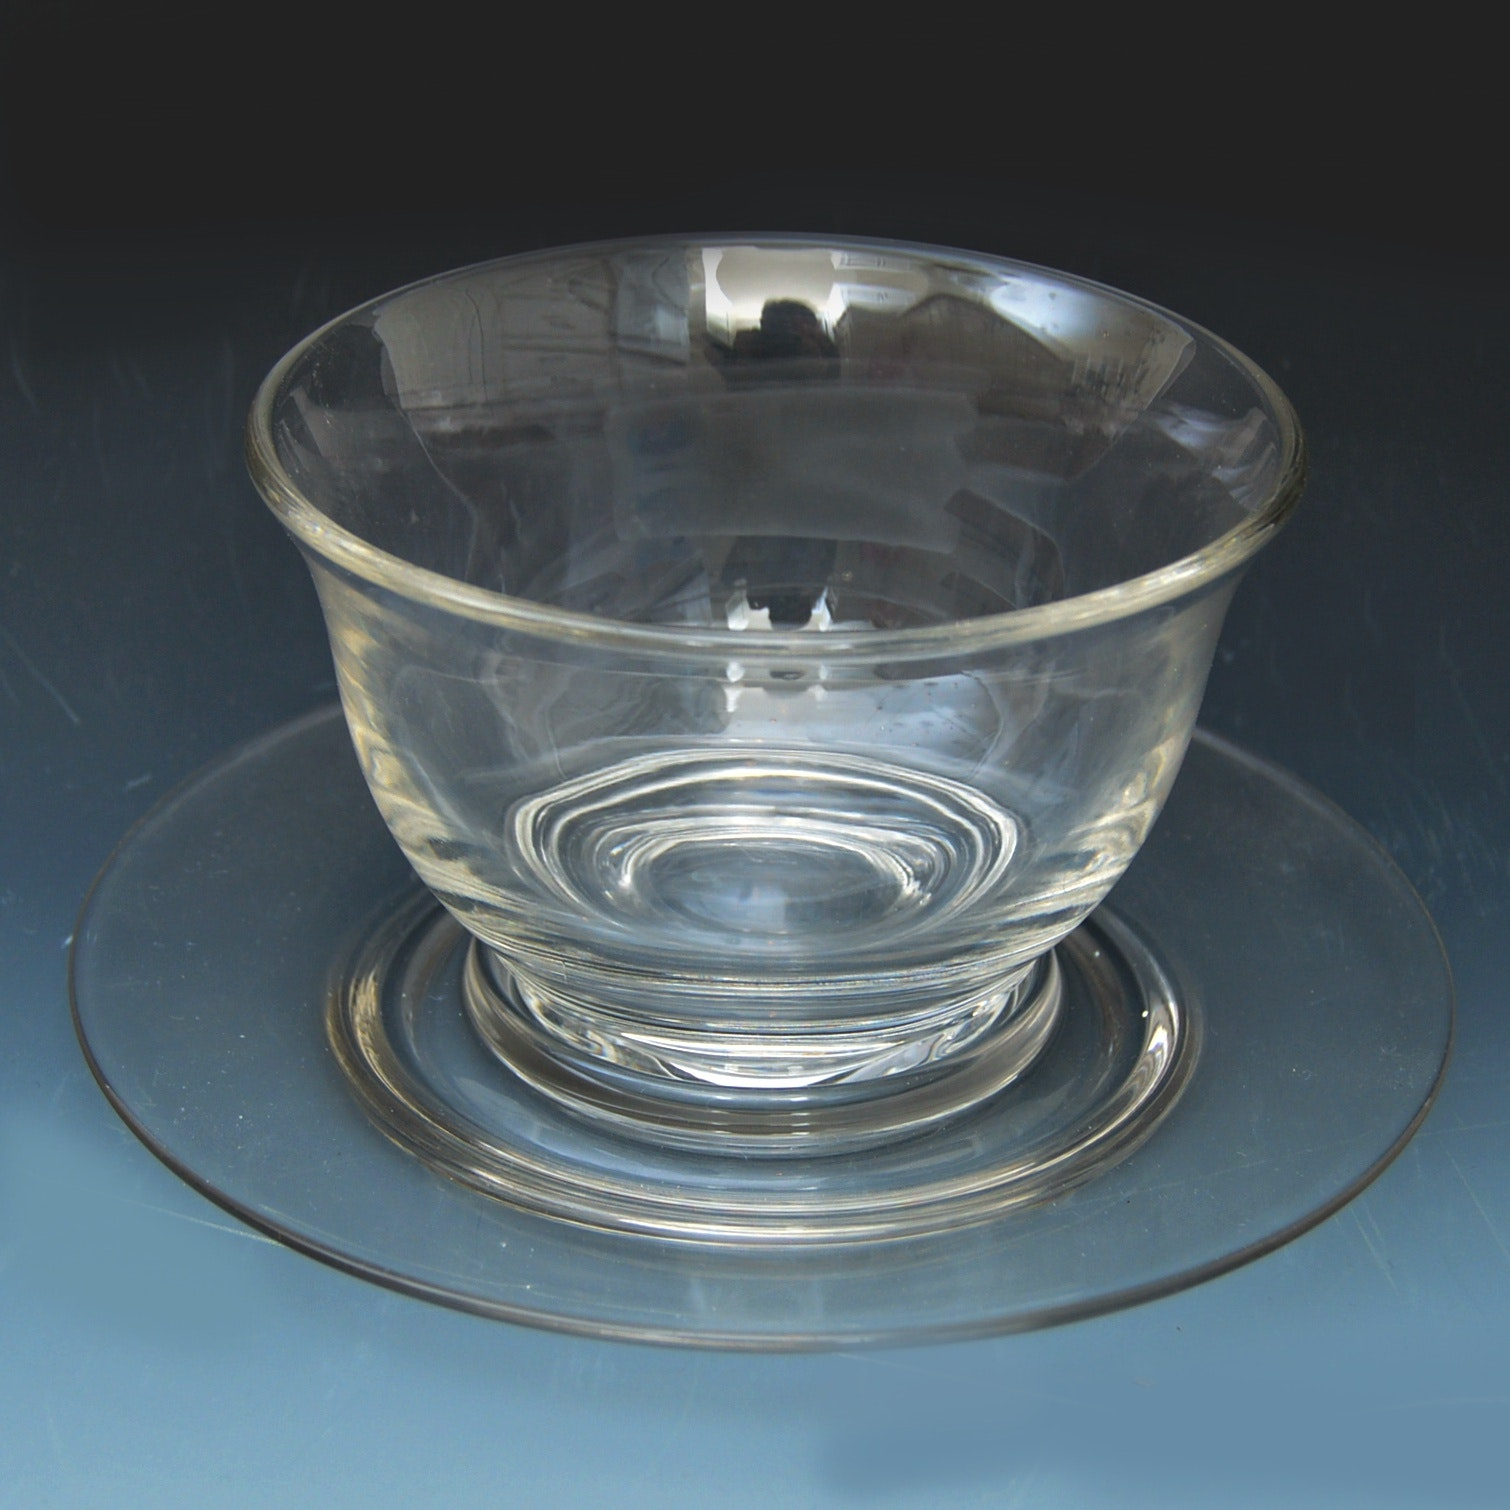 Heisey Sauce Bowl with Tray